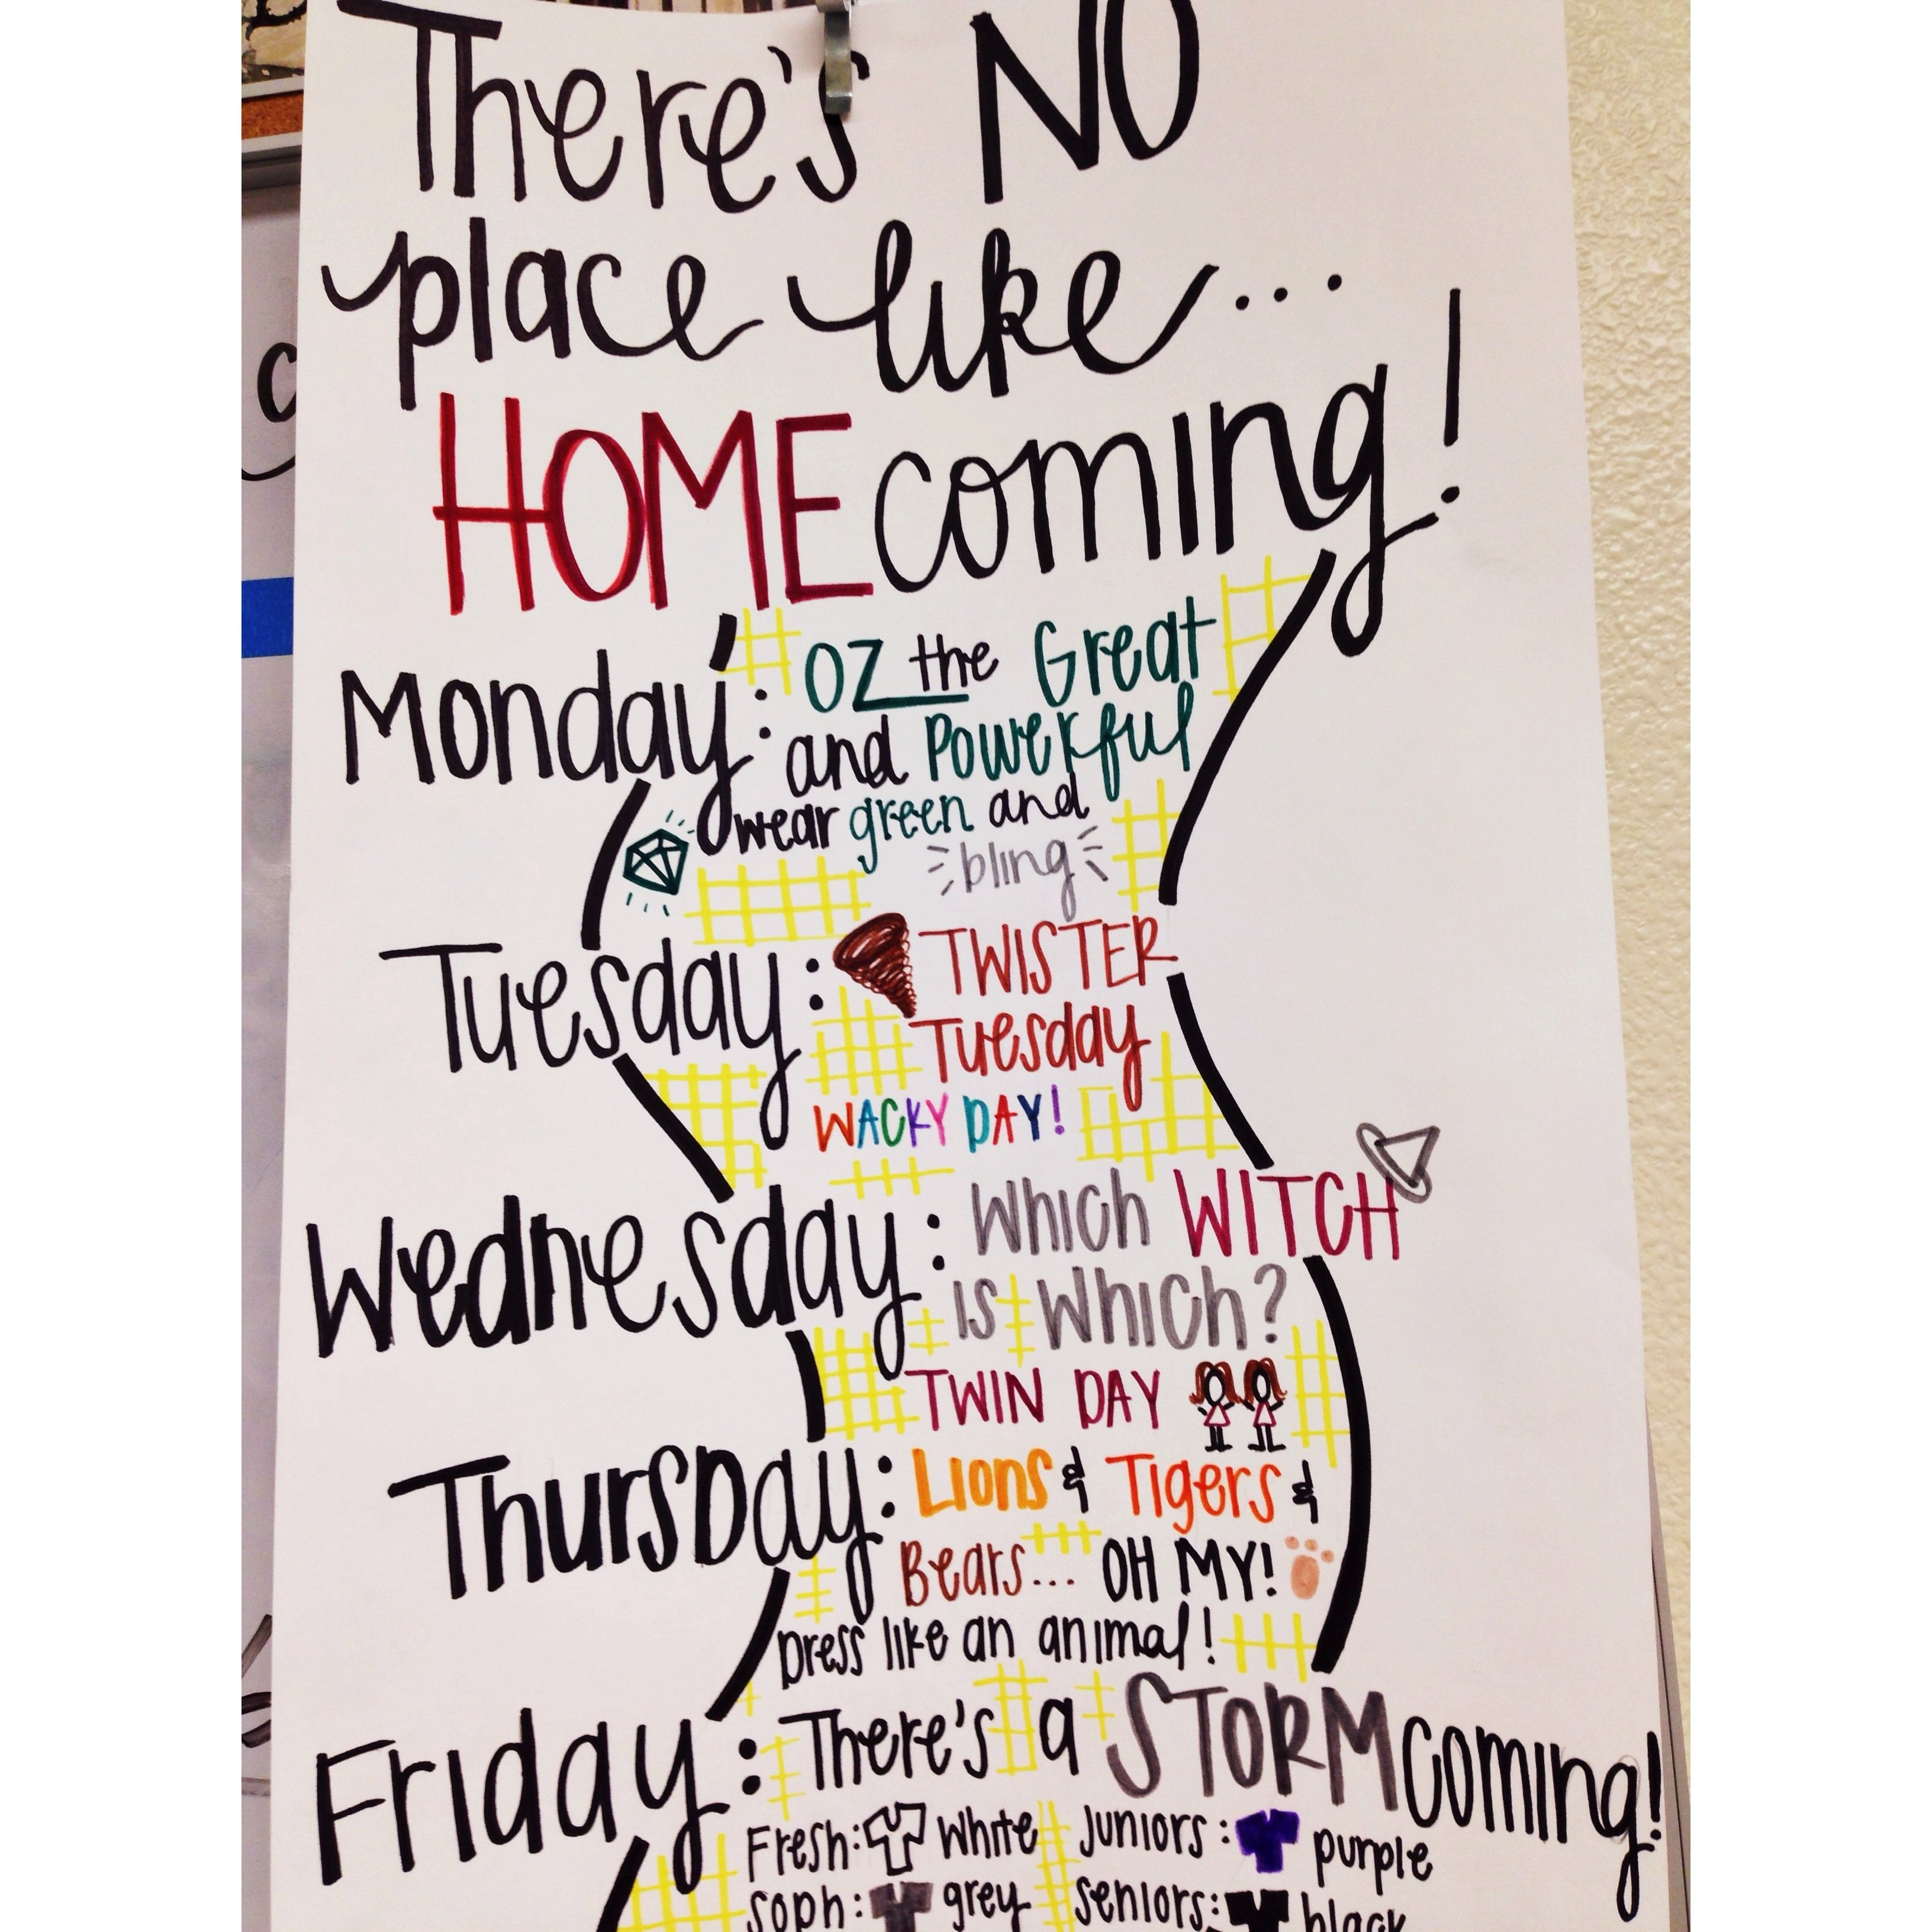 10 Perfect Homecoming Week Dress Up Ideas wizard of oz homecoming theme idea student council pinterest 1 2020